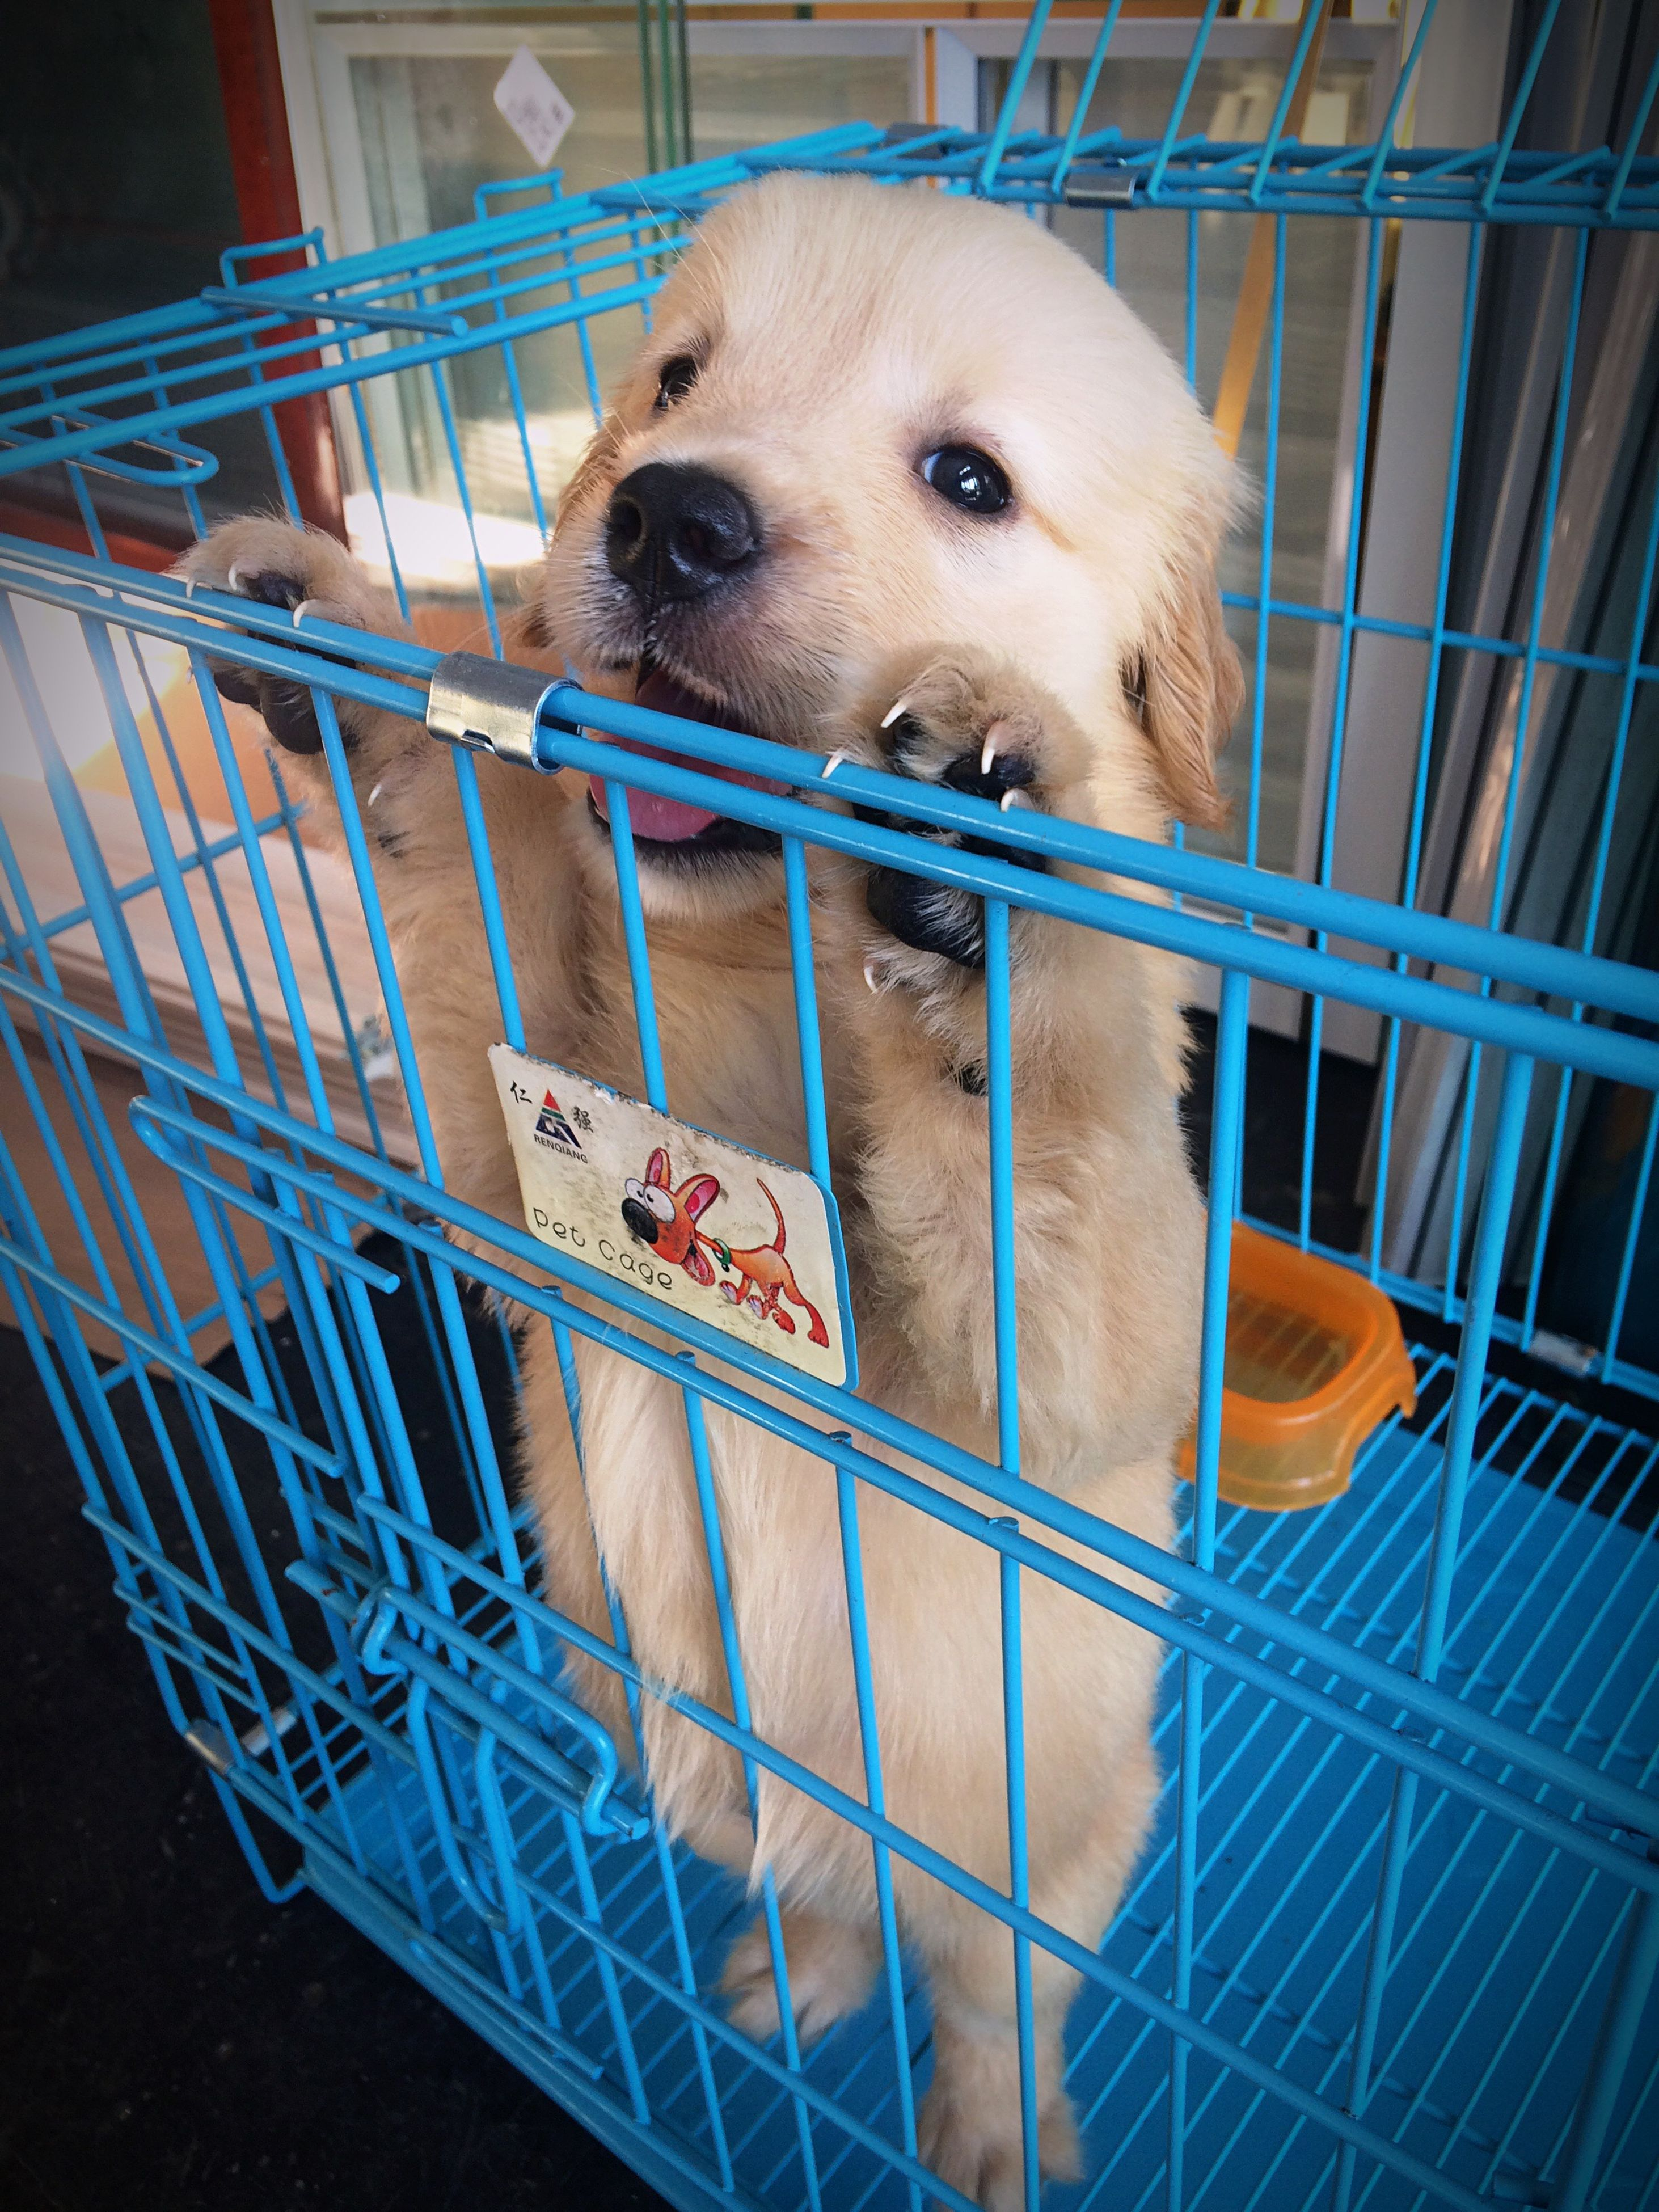 animal themes, one animal, dog, domestic animals, pets, cage, close-up, mammal, animal head, blue, day, no people